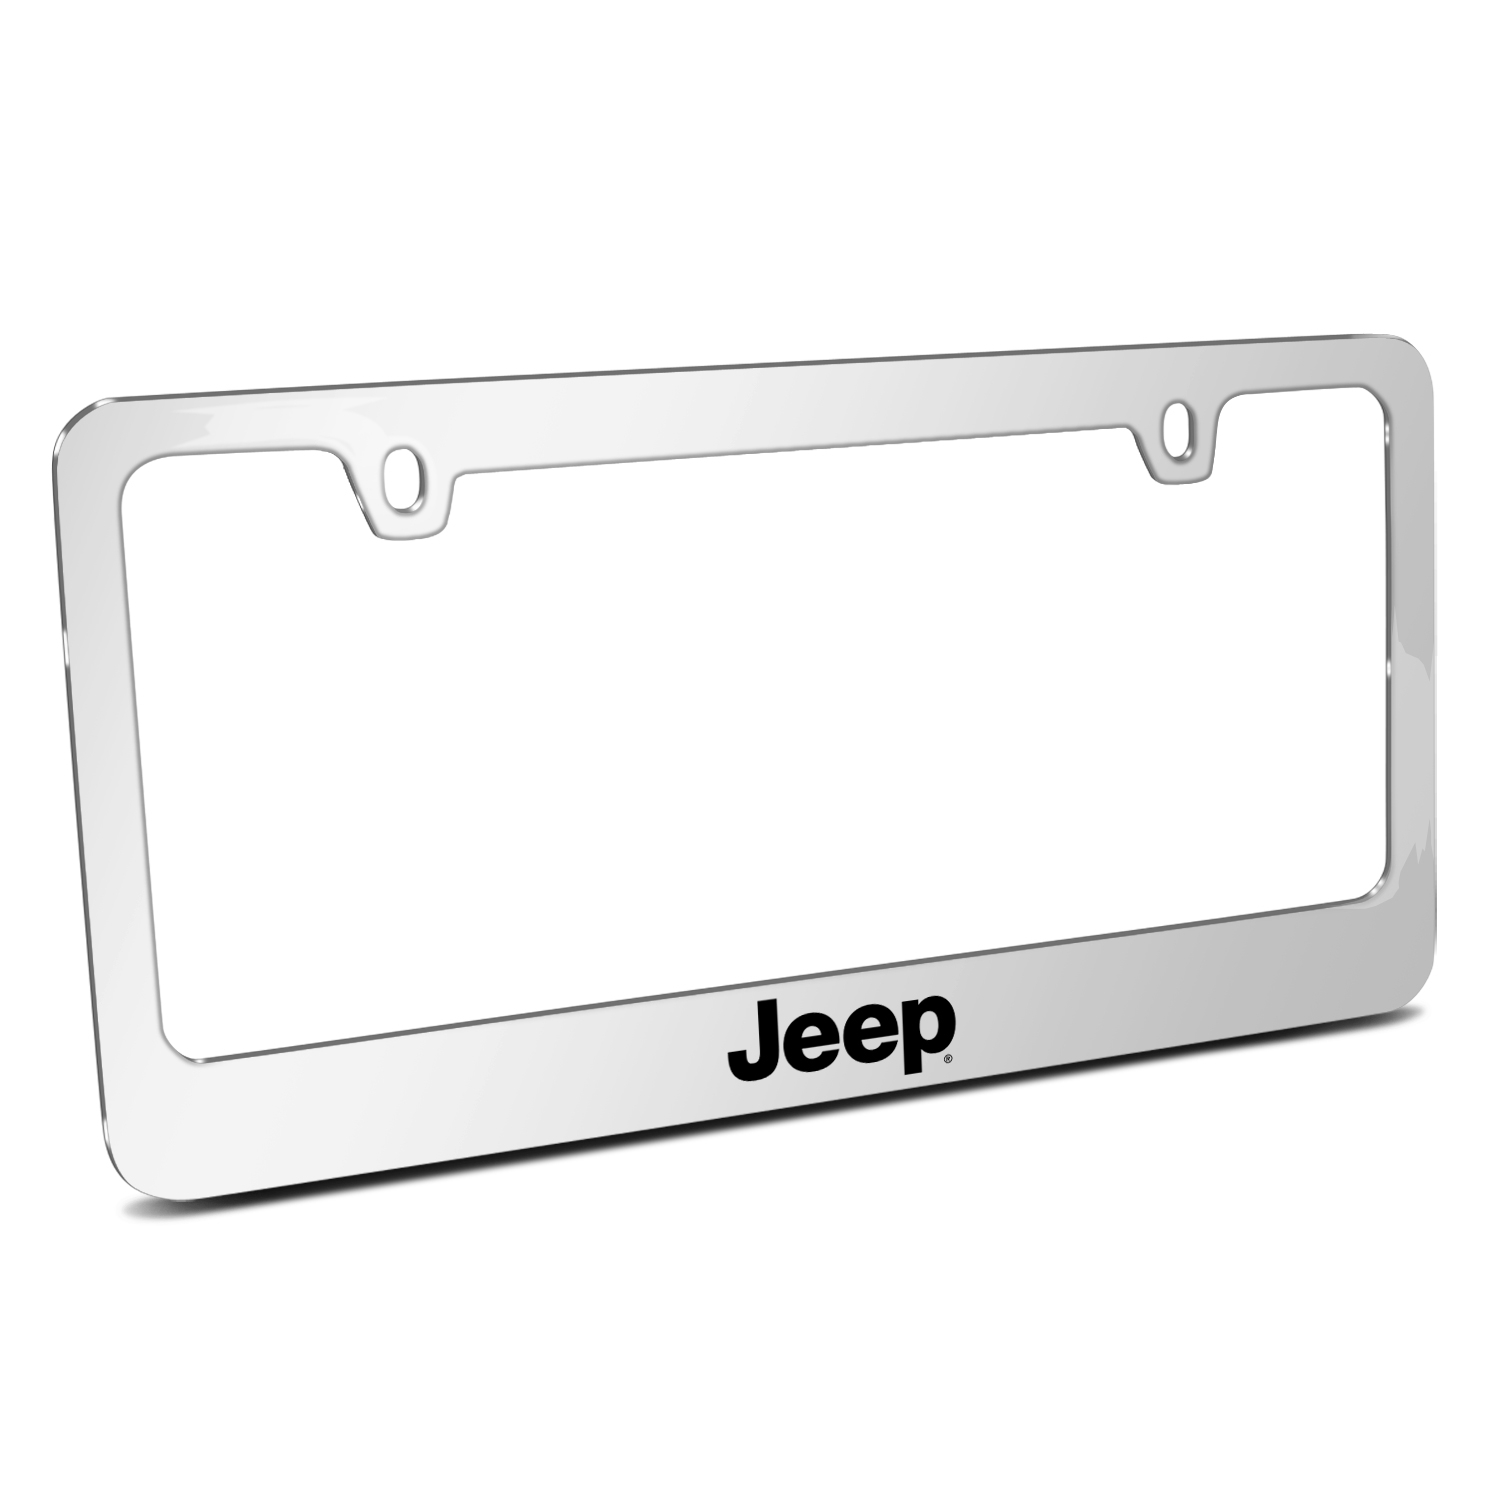 Jeep Mirror Chrome Metal License Plate Frame